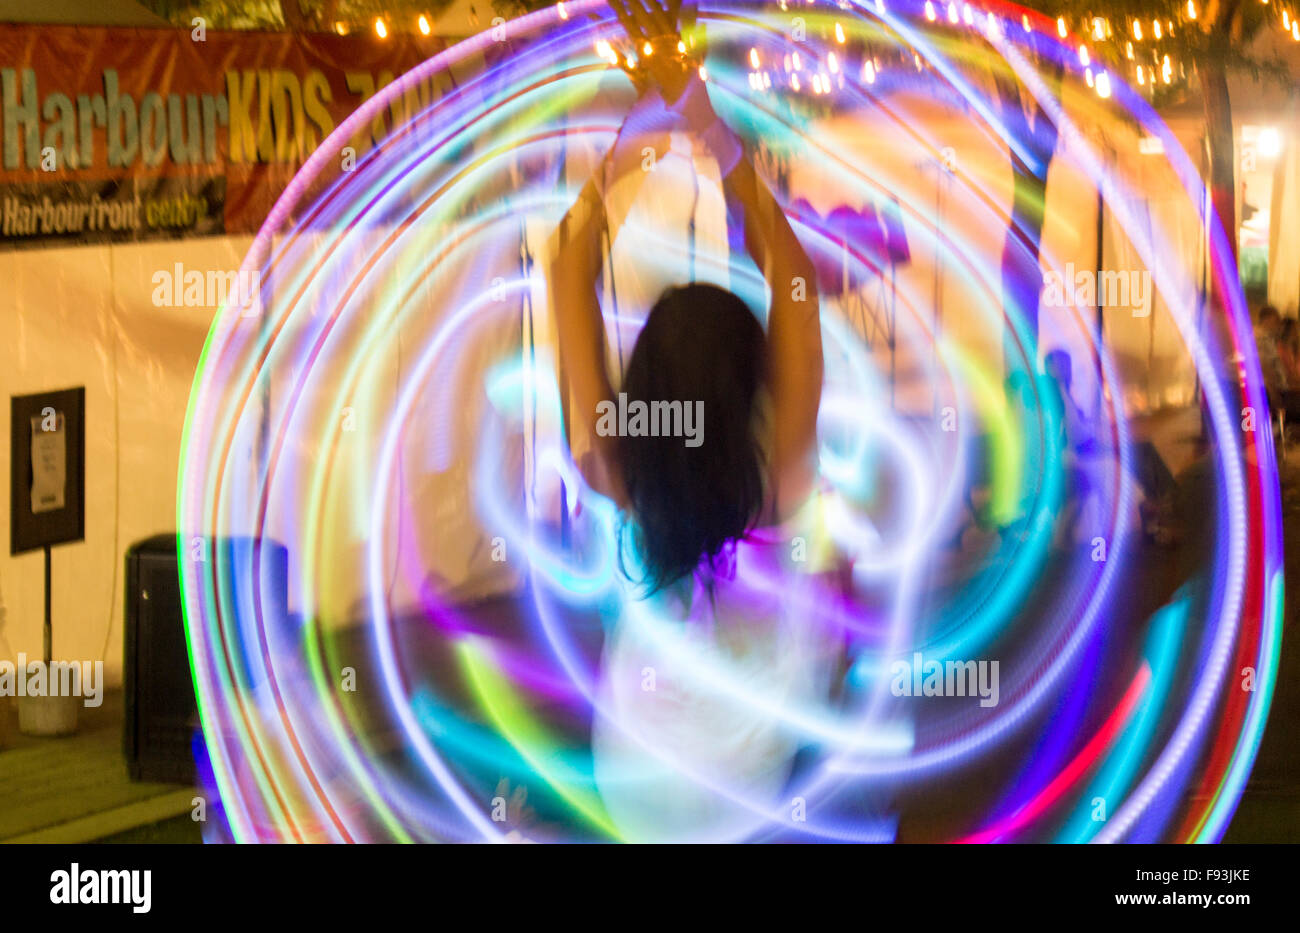 woman-spinning-rainbow-hula-hoops-at-wor